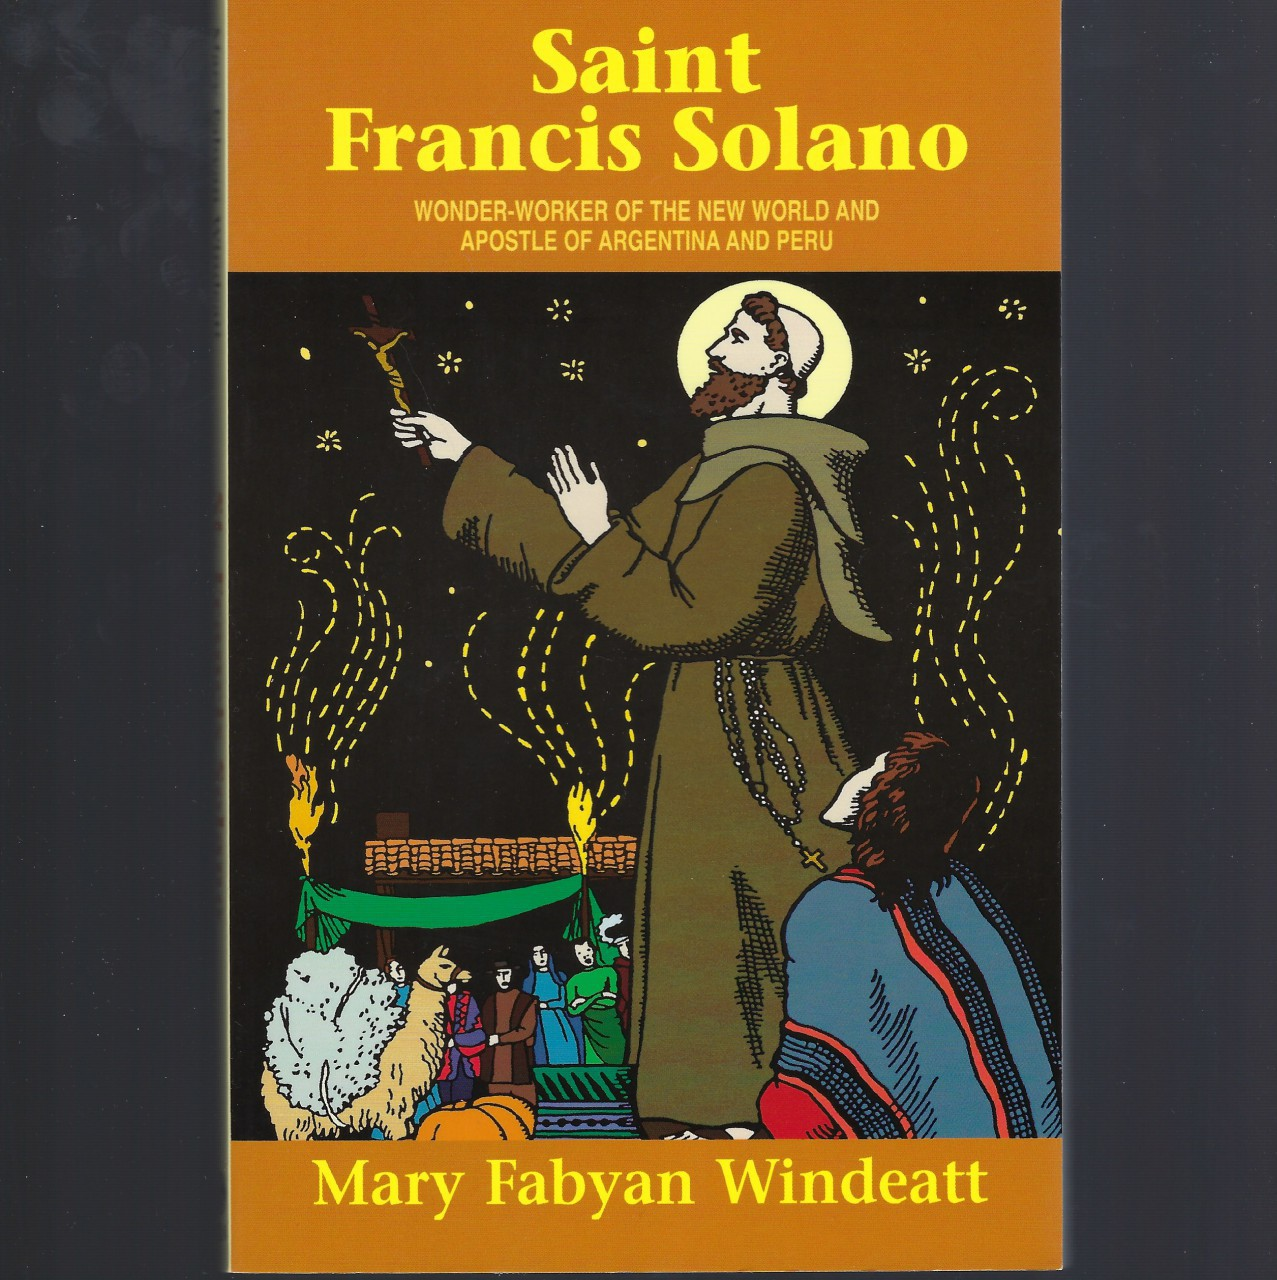 Saint Francis Solano Wonder-worker Of The New World And Apostle Of Argentina And Peru, Mary Fabyan Windeatt